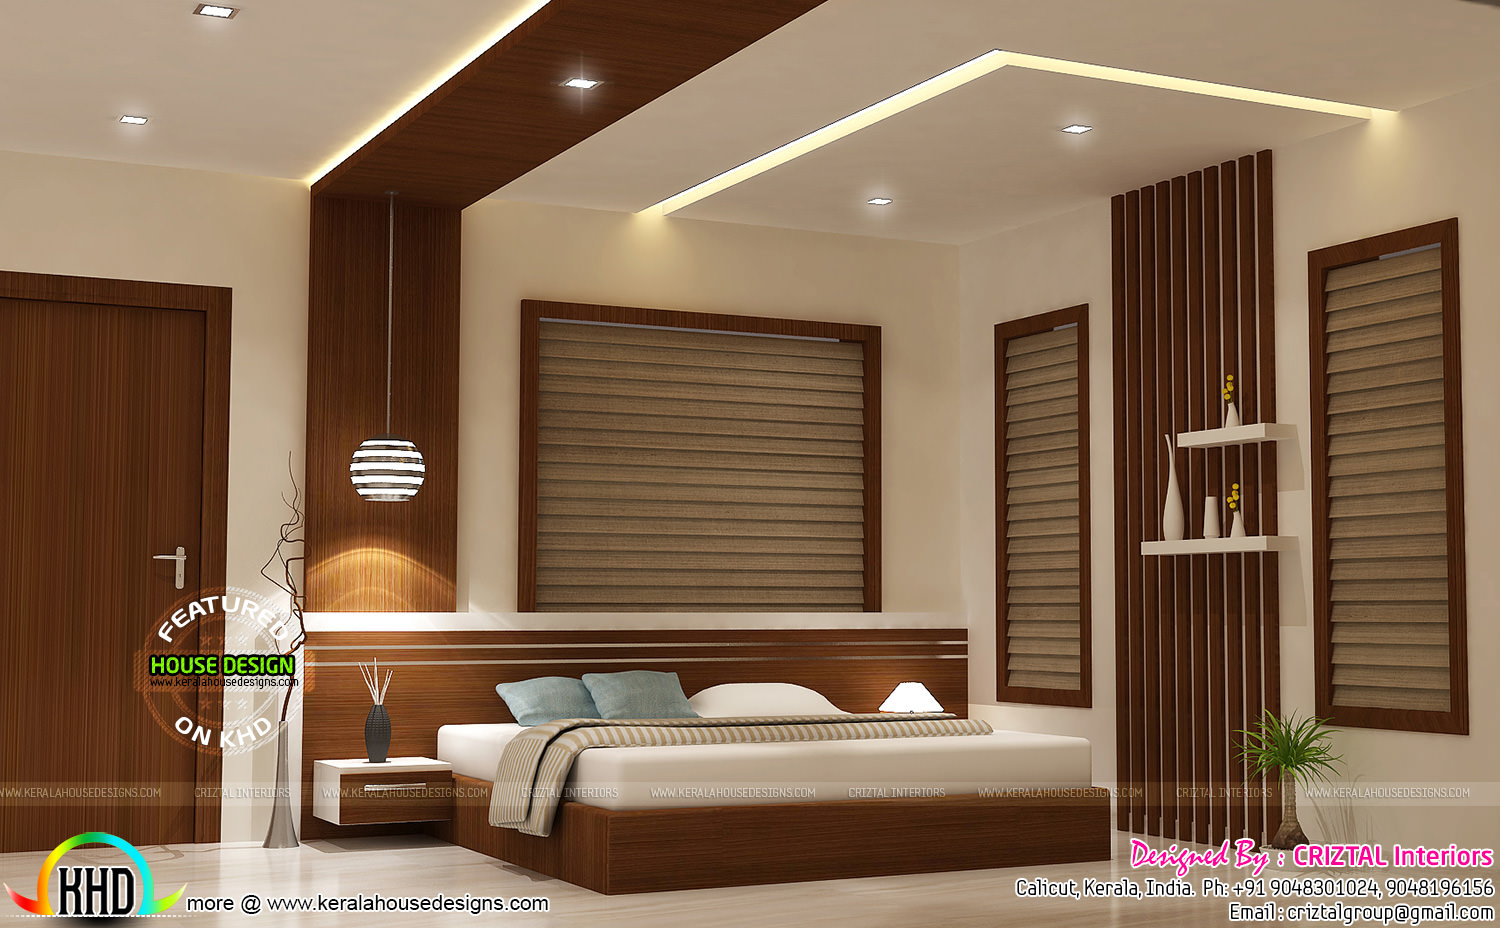 Bedroom dining hall and living interior kerala home for Interior design for living room and bedroom